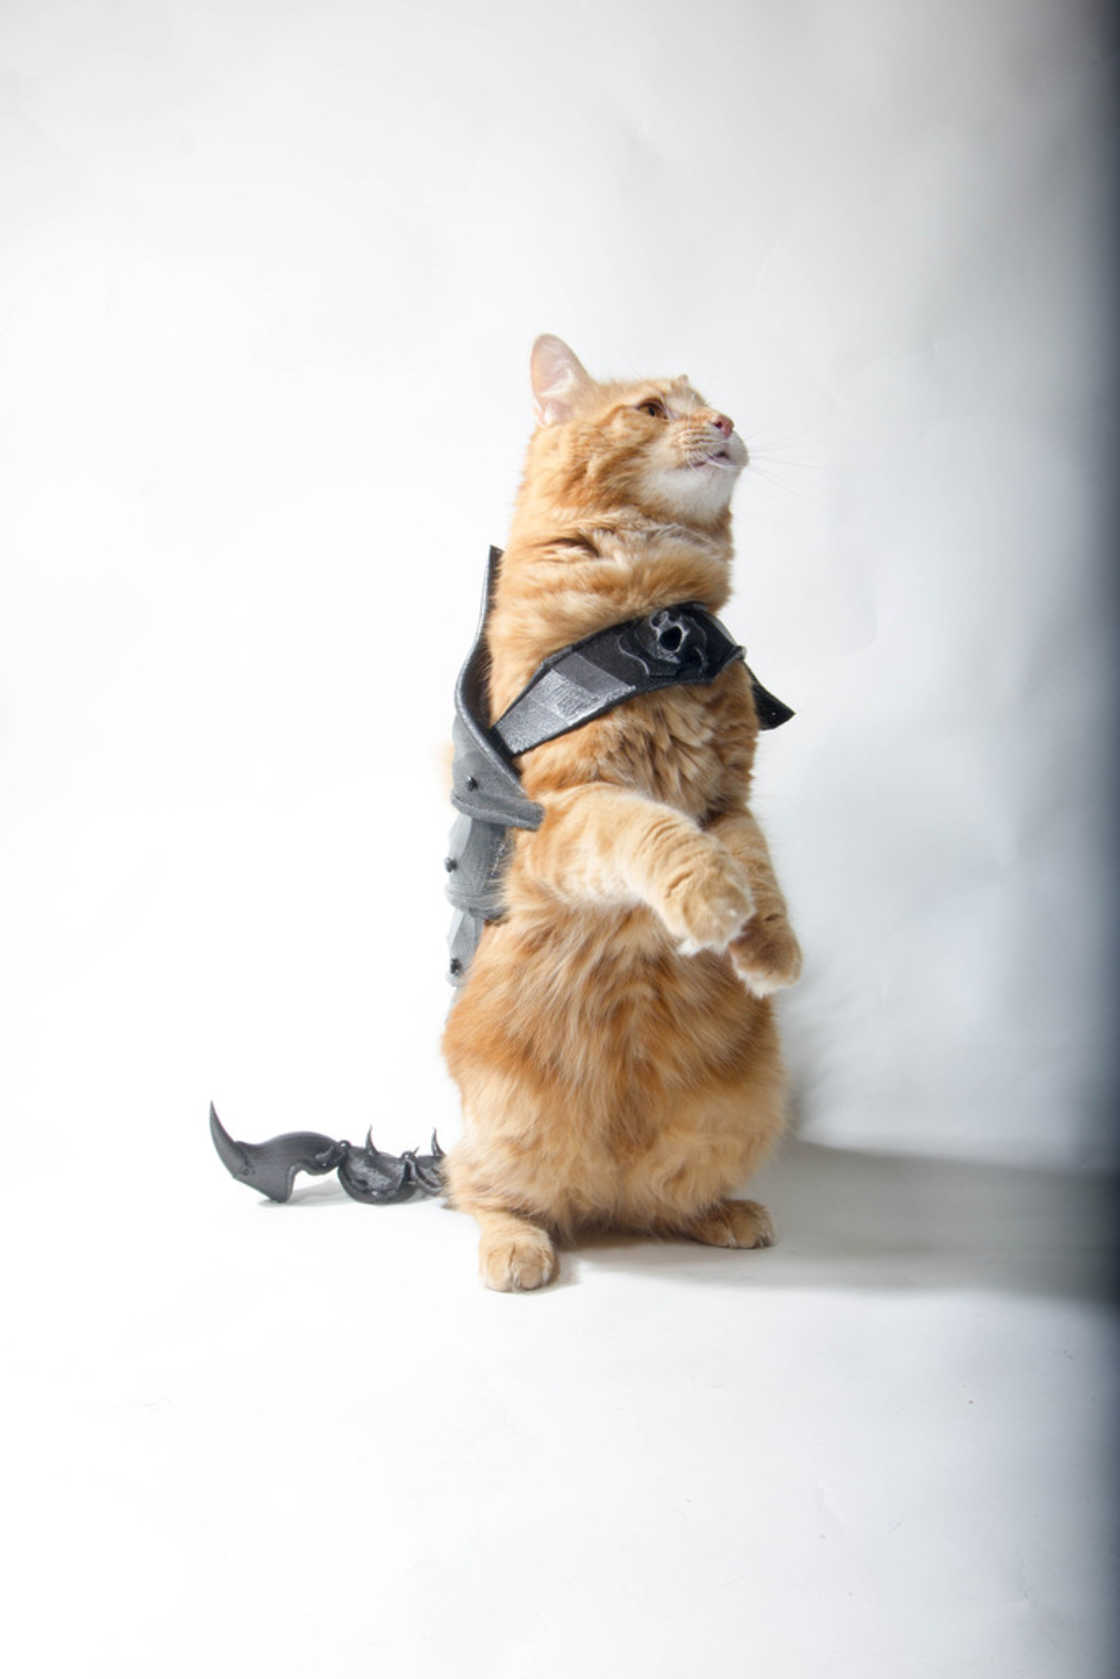 Build a 3D printed armor for your cat